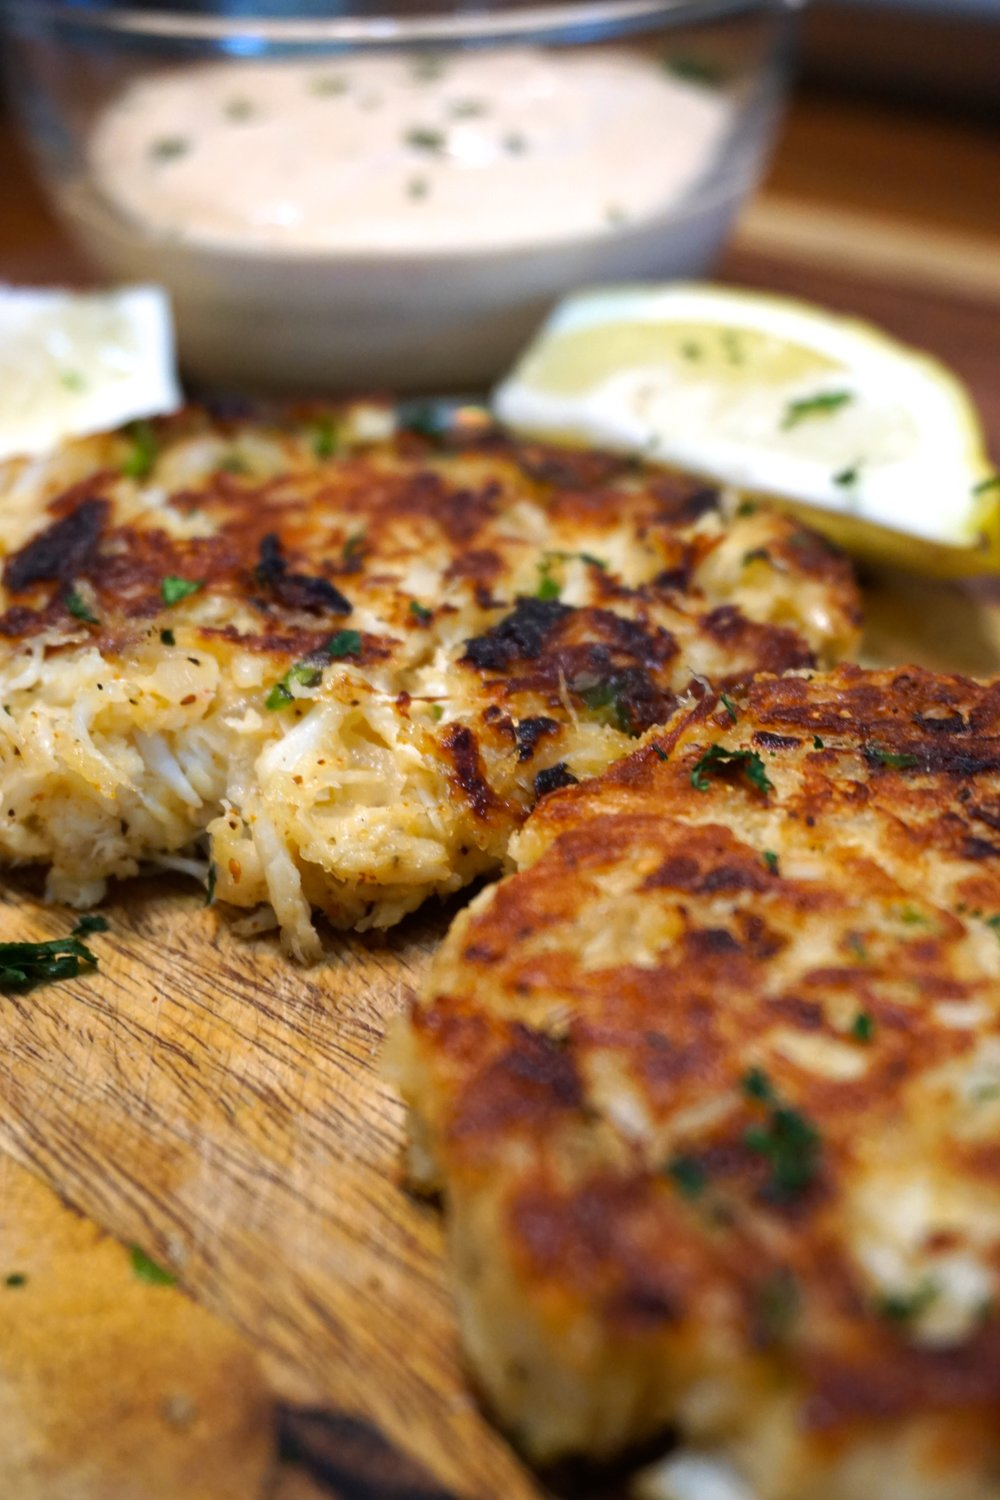 Crab Cakes - The perfect appetizers or main course for a